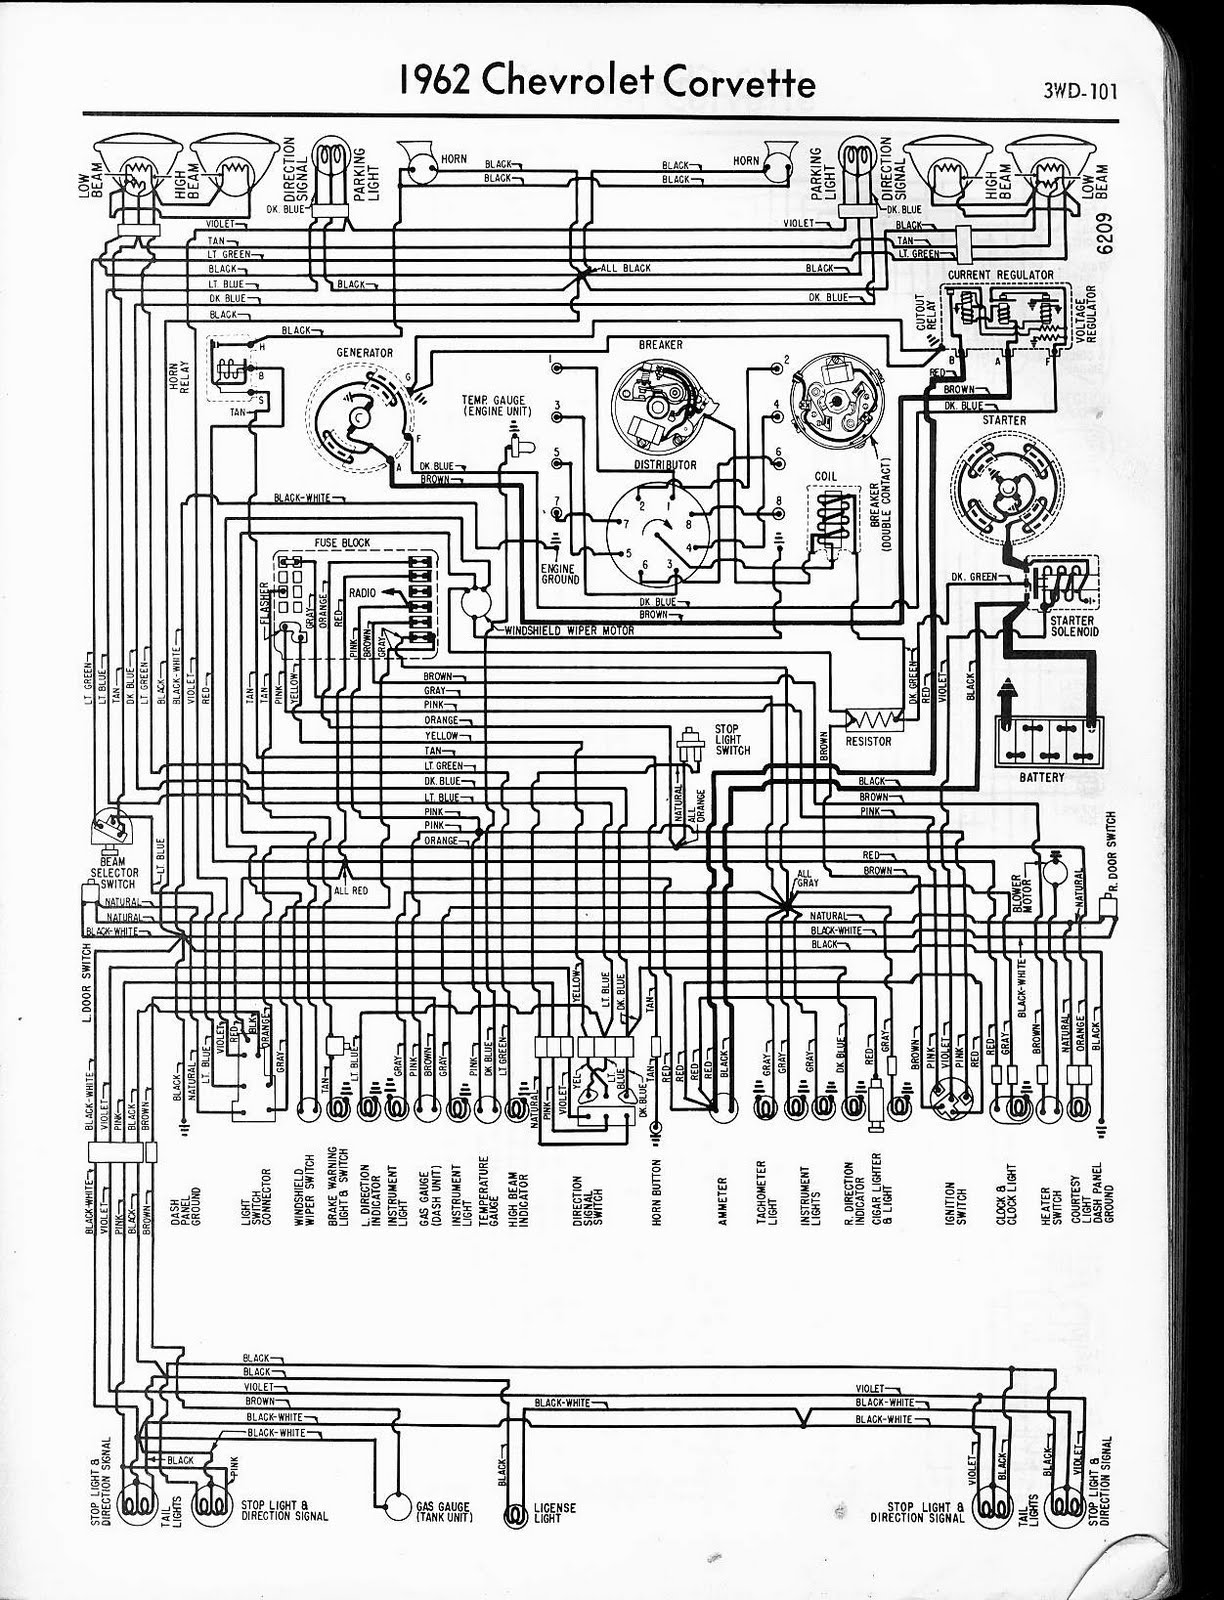 1965 corvette wiring schematic auto electrical wiring diagram 1980 corvette fuse box wiring diagram 1982 corvette [ 1224 x 1600 Pixel ]